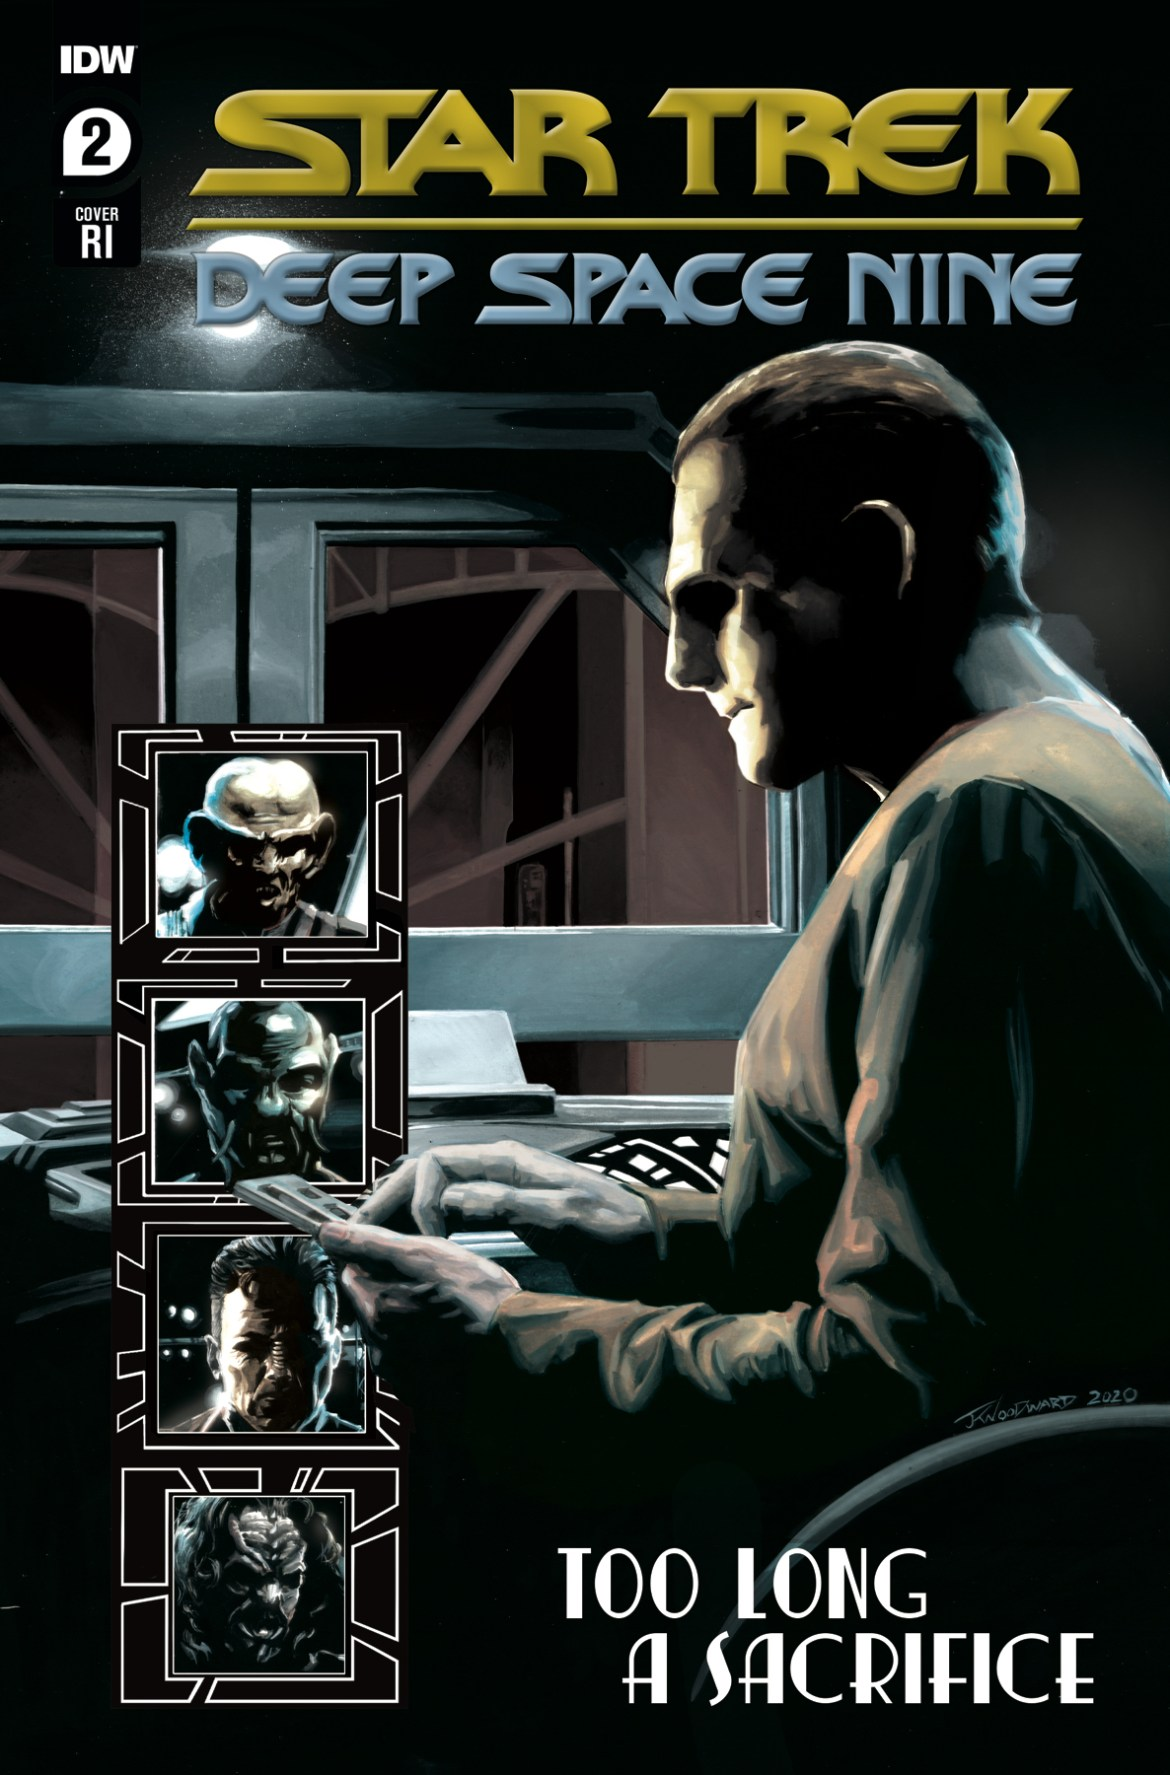 780342_43b1000f3936a0df082fdee4963d8e5145239408 ComicList: IDW Publishing New Releases for 08/19/2020